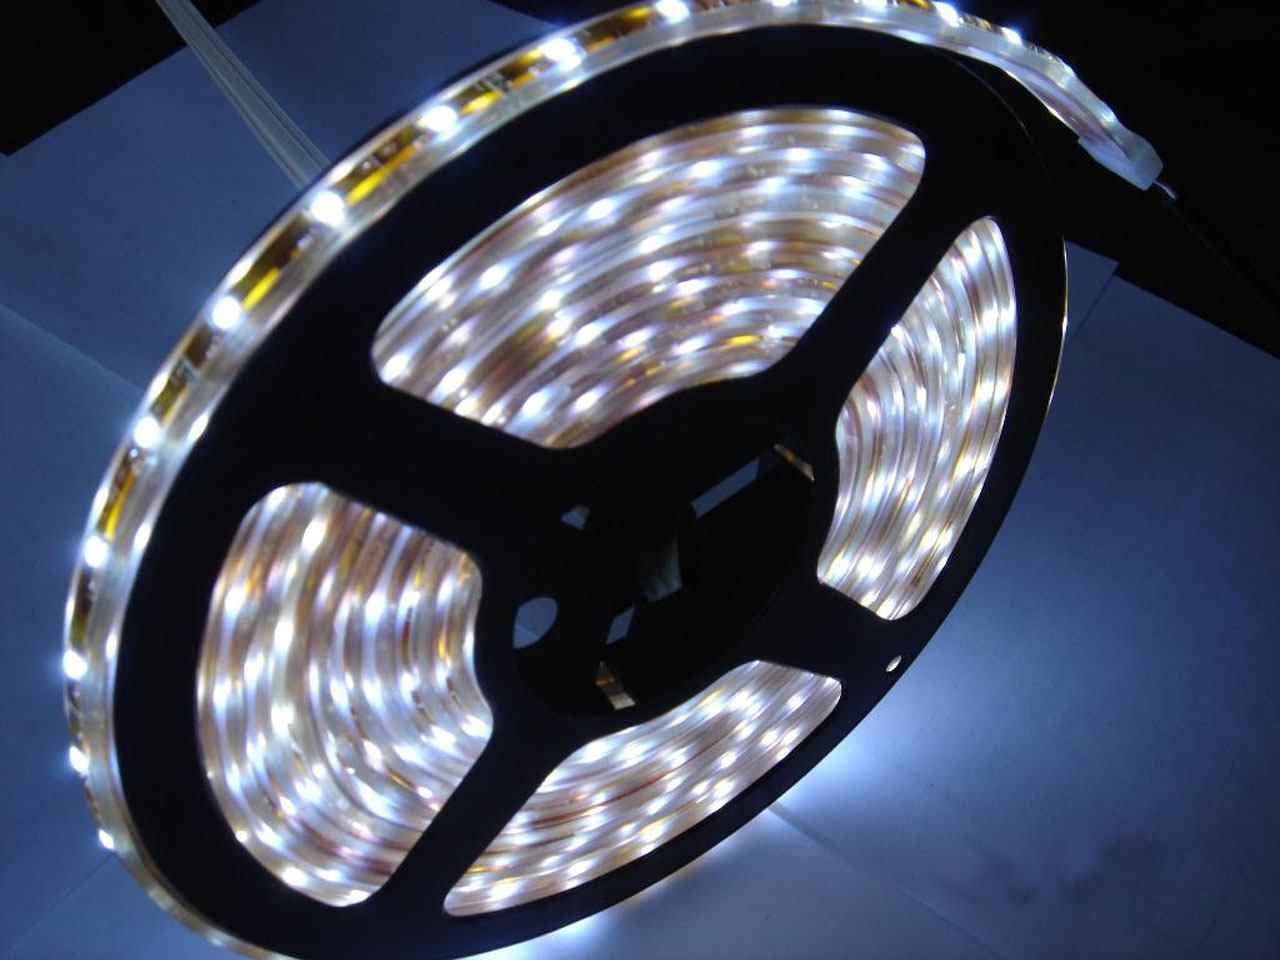 Ruban à led simple de 30 led SMD 5050 par mètre